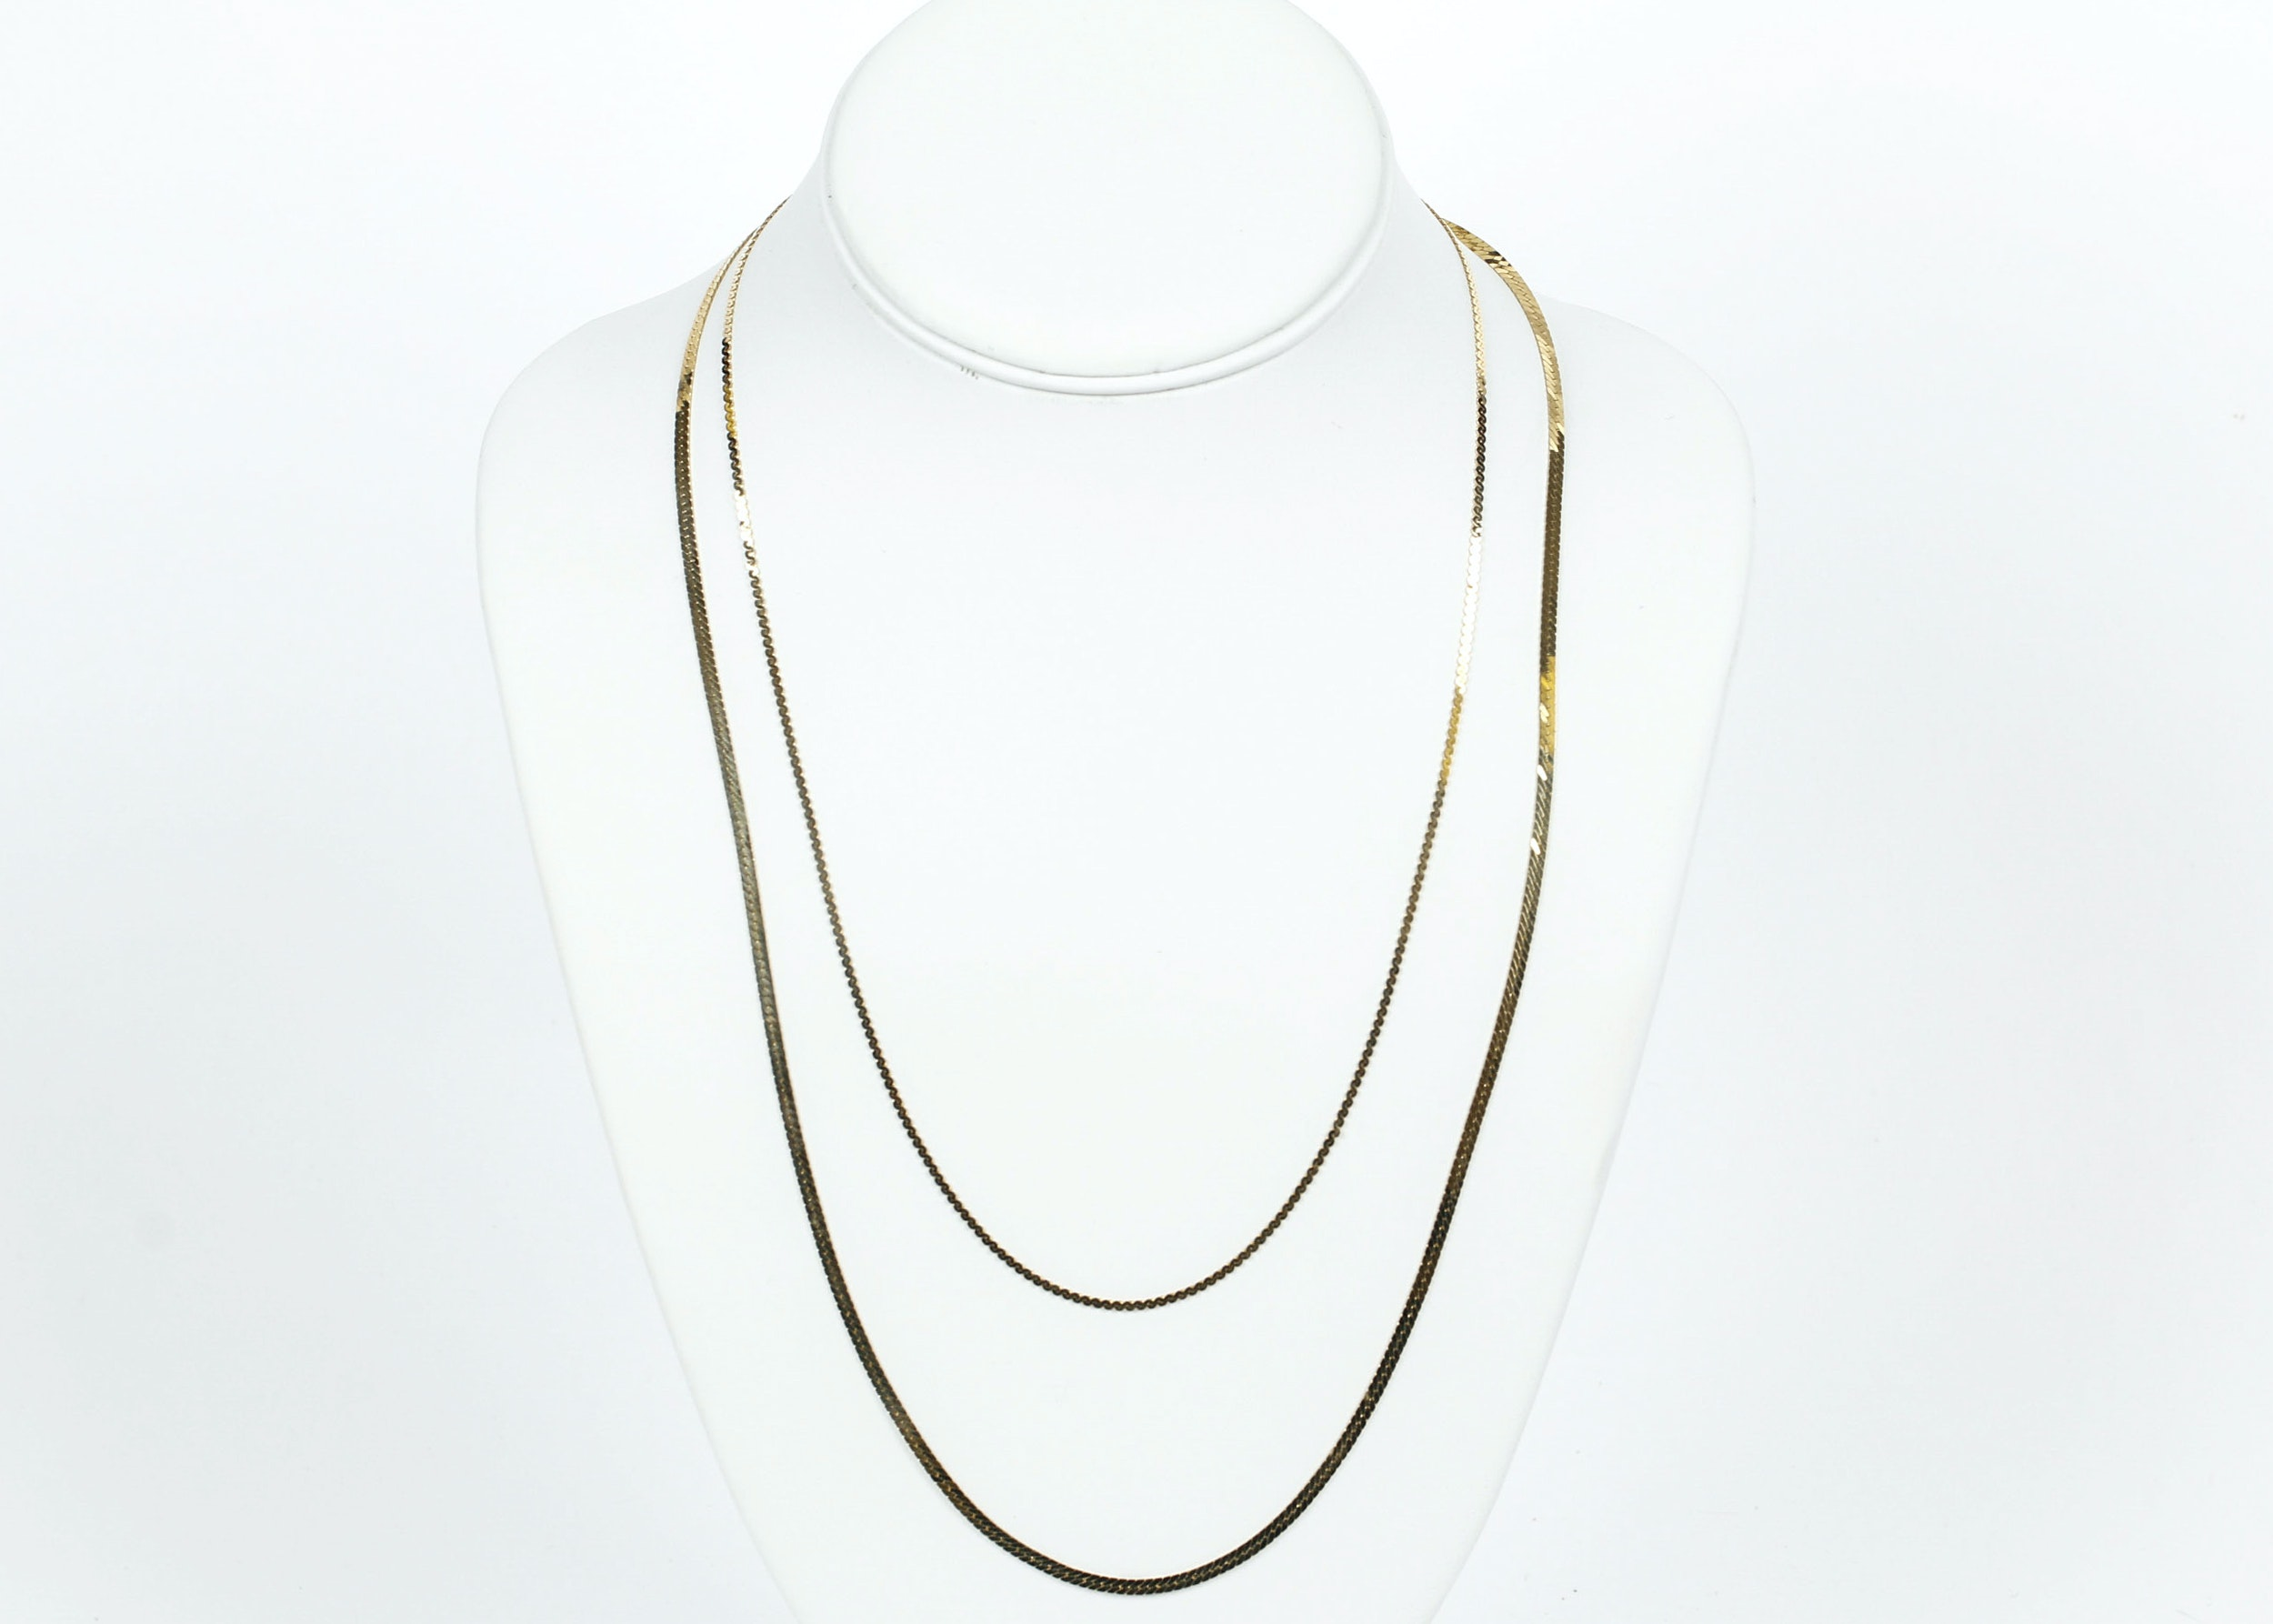 Pair of 14K Yellow Gold Necklaces